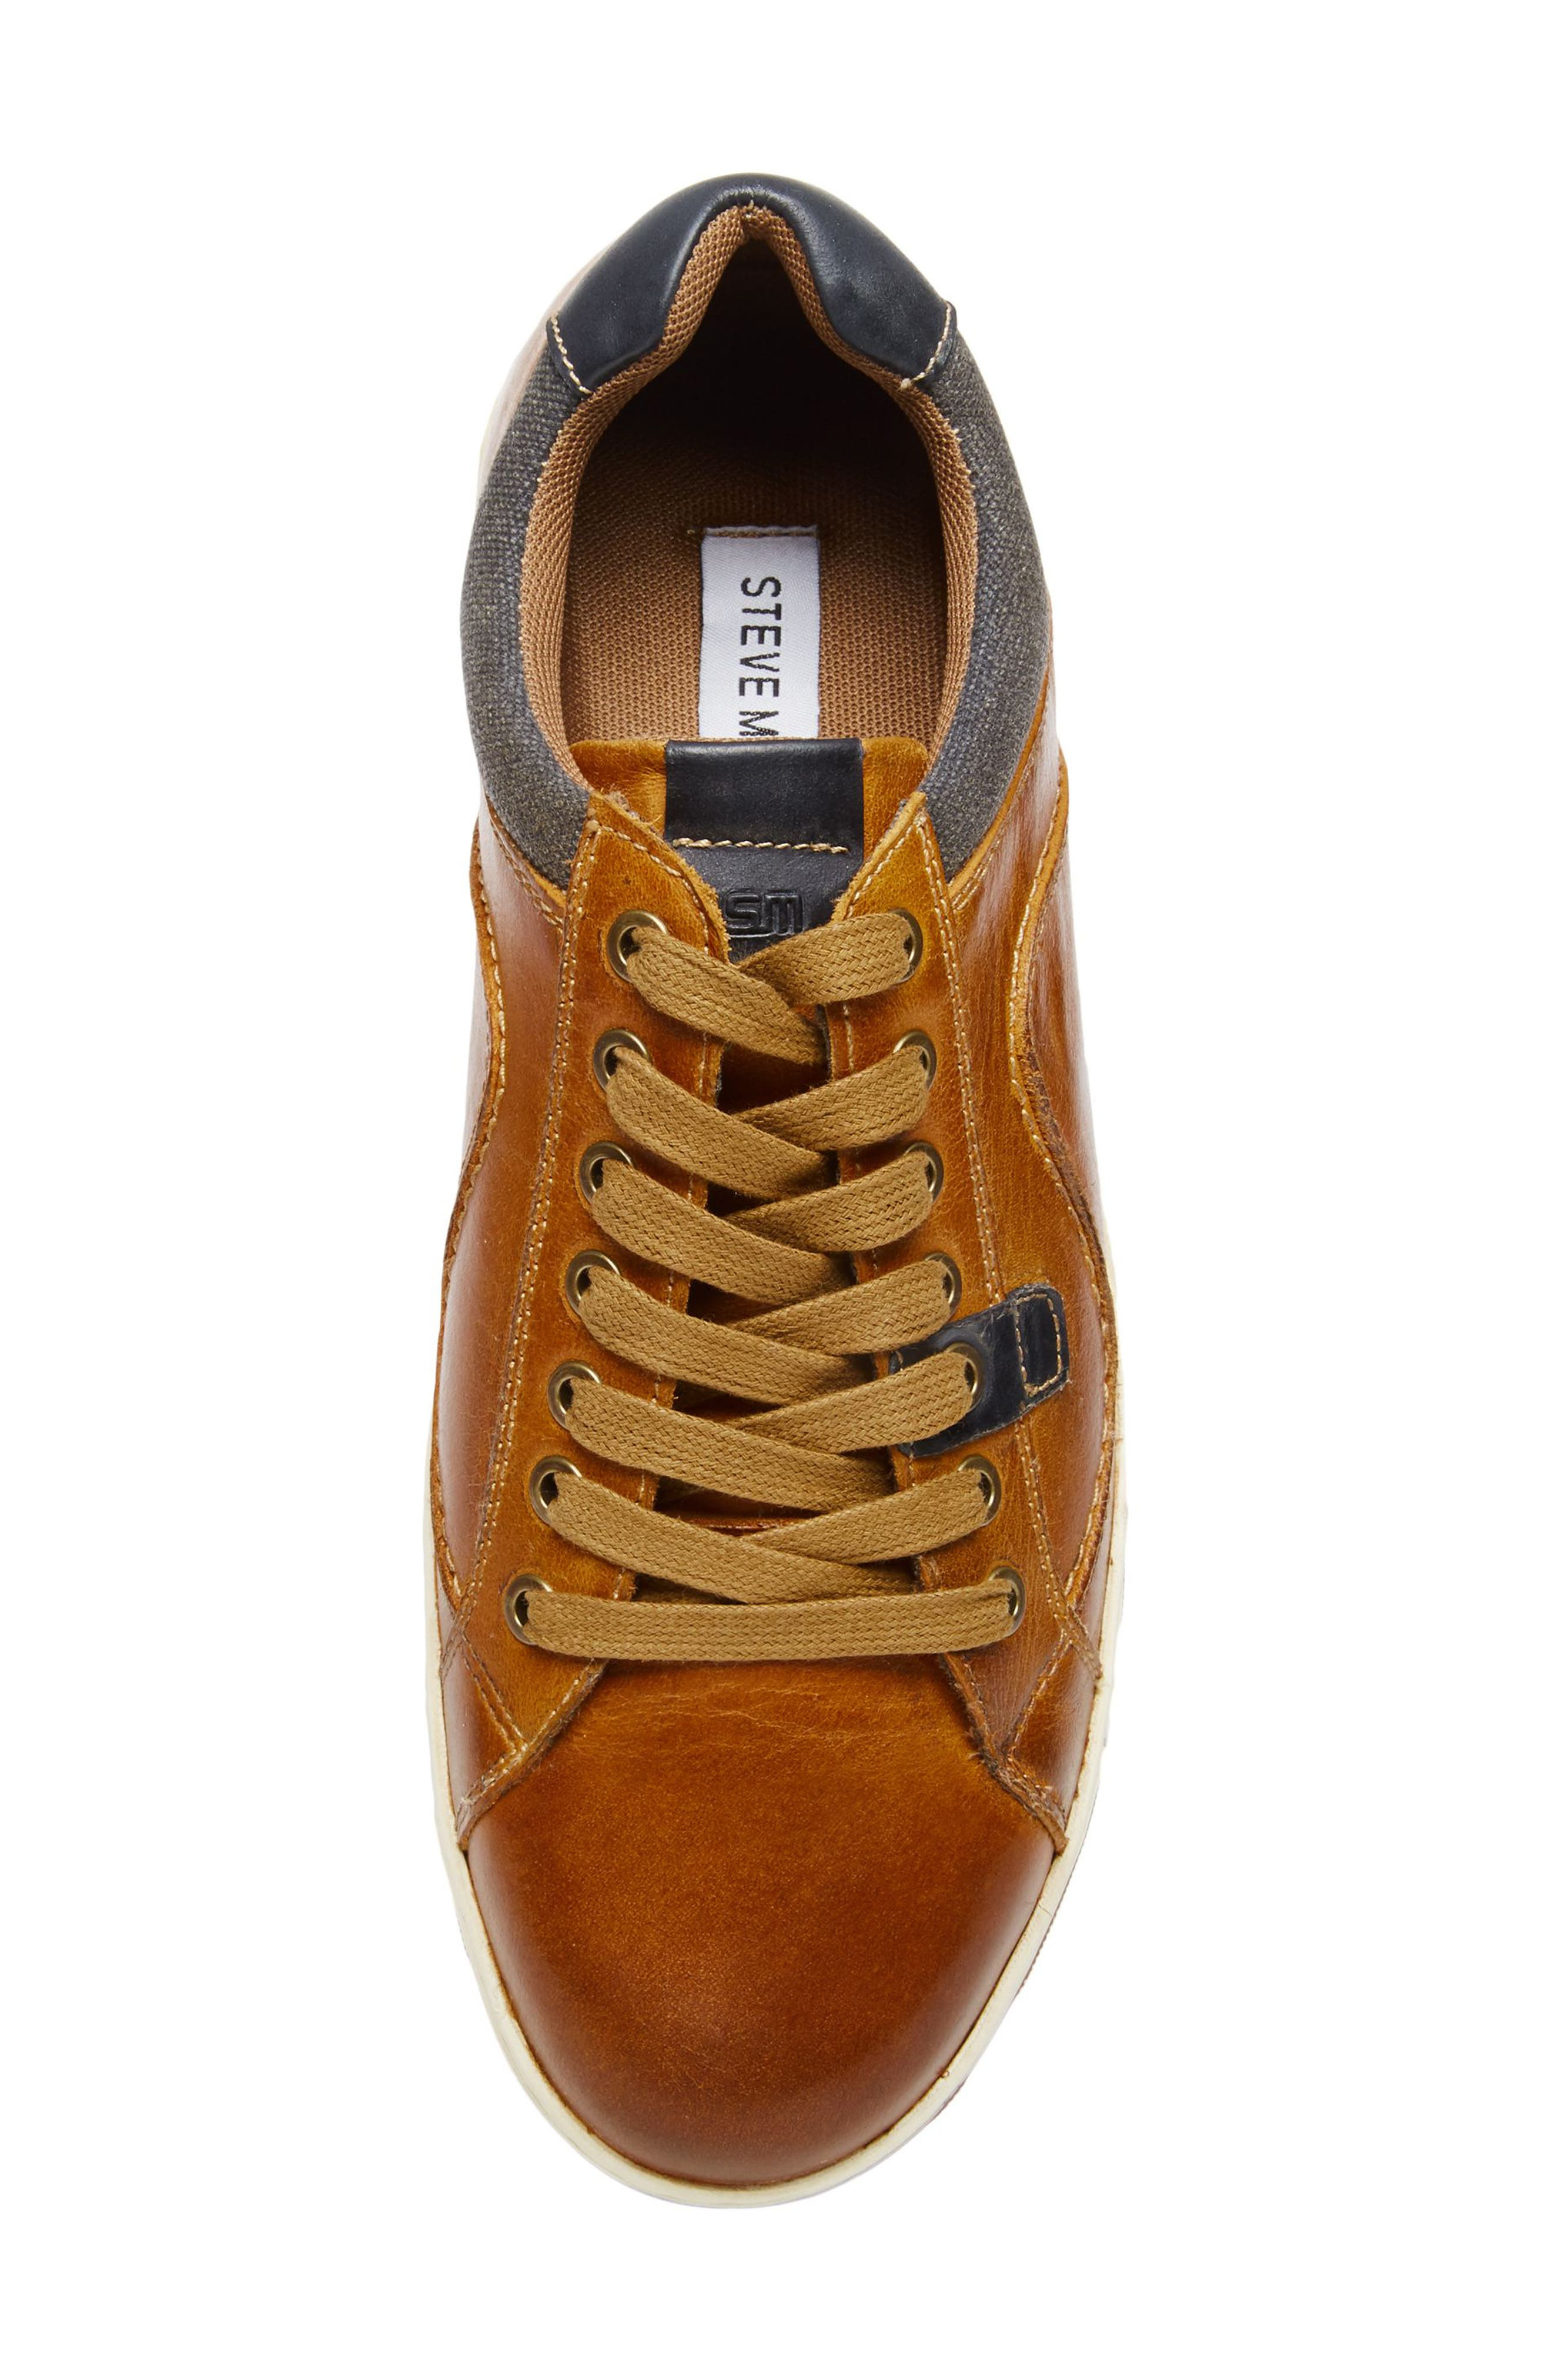 Chater Low Top Sneaker,                             Alternate thumbnail 5, color,                             RUST LEATHER